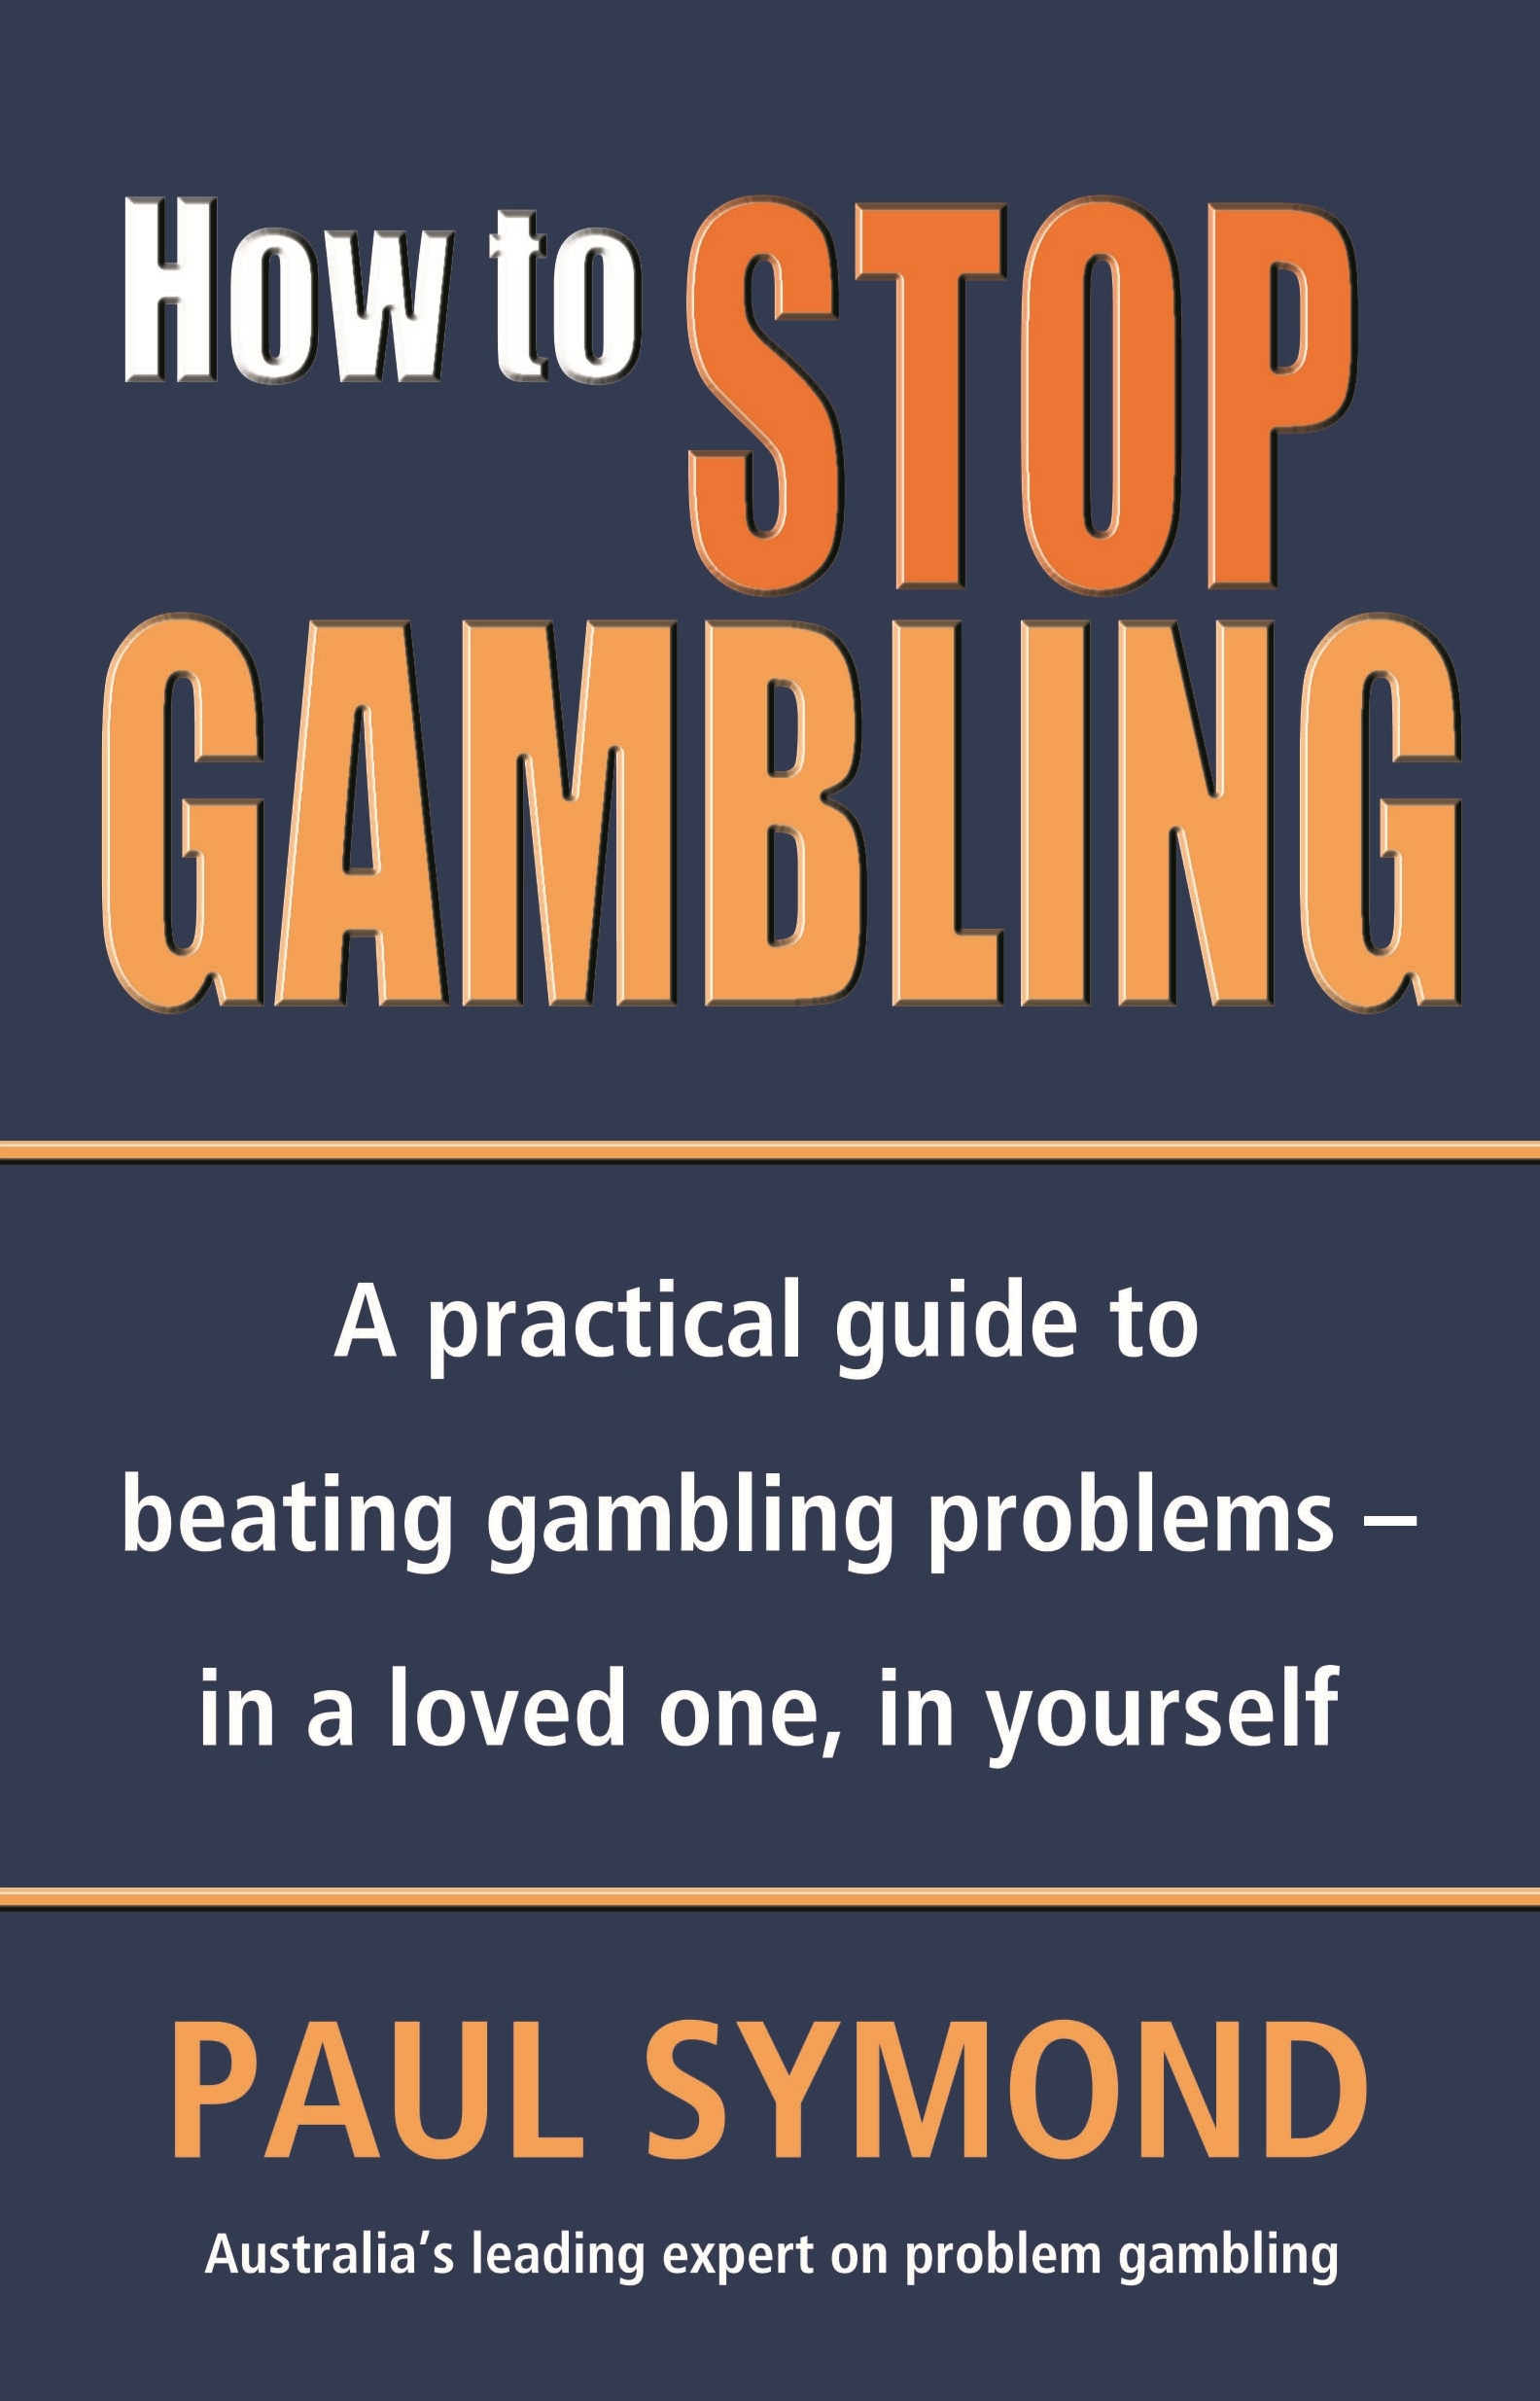 ranger book addiction gambling